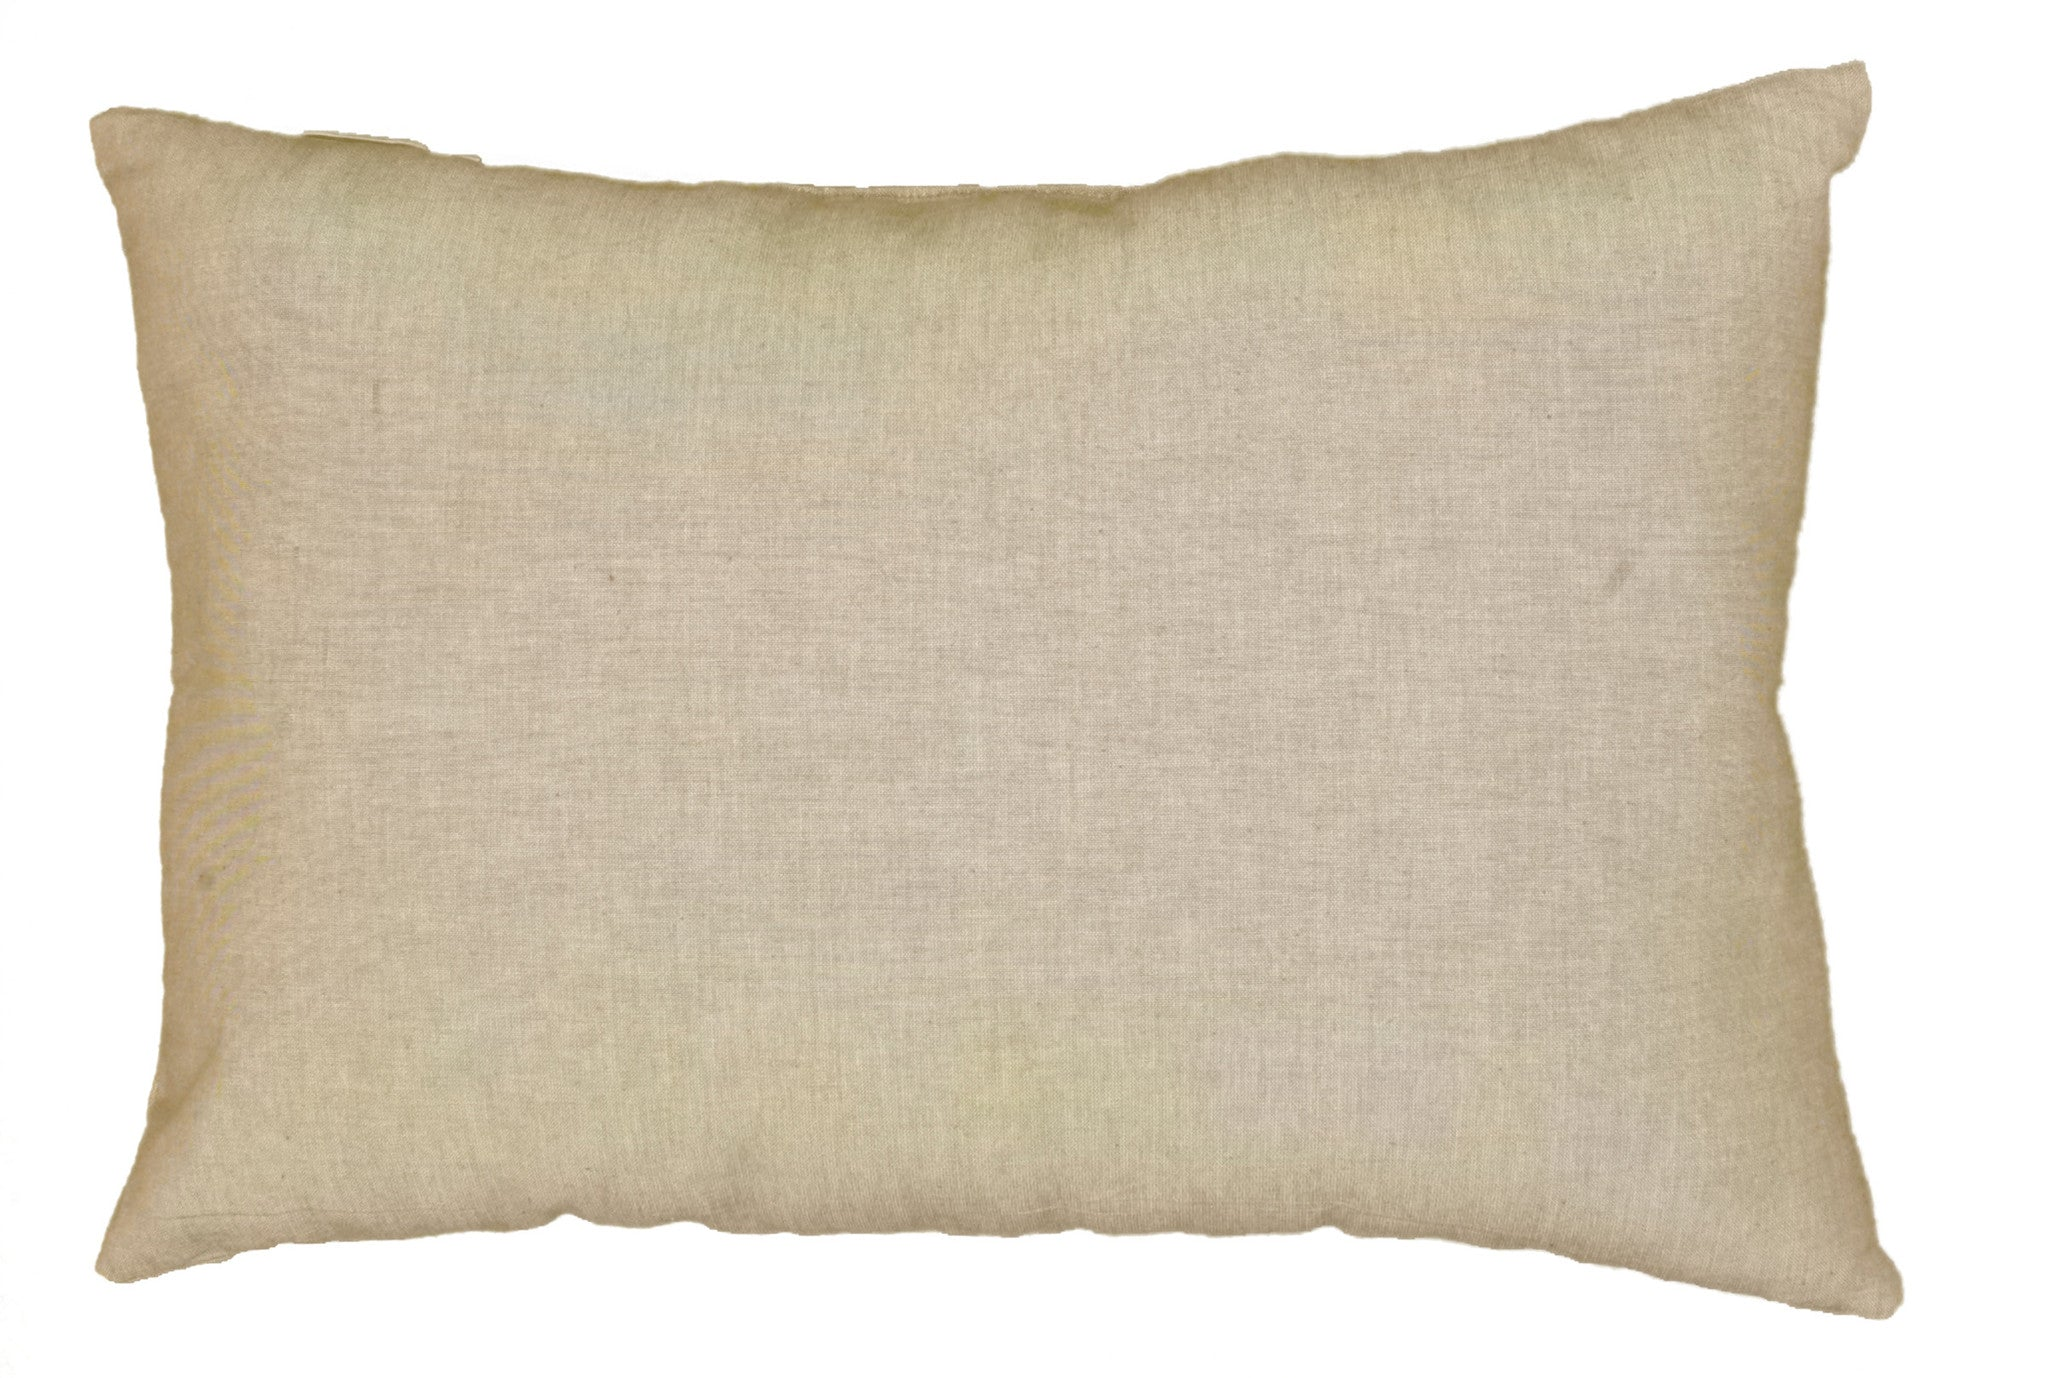 LR Resources Pillows 07232 Natural